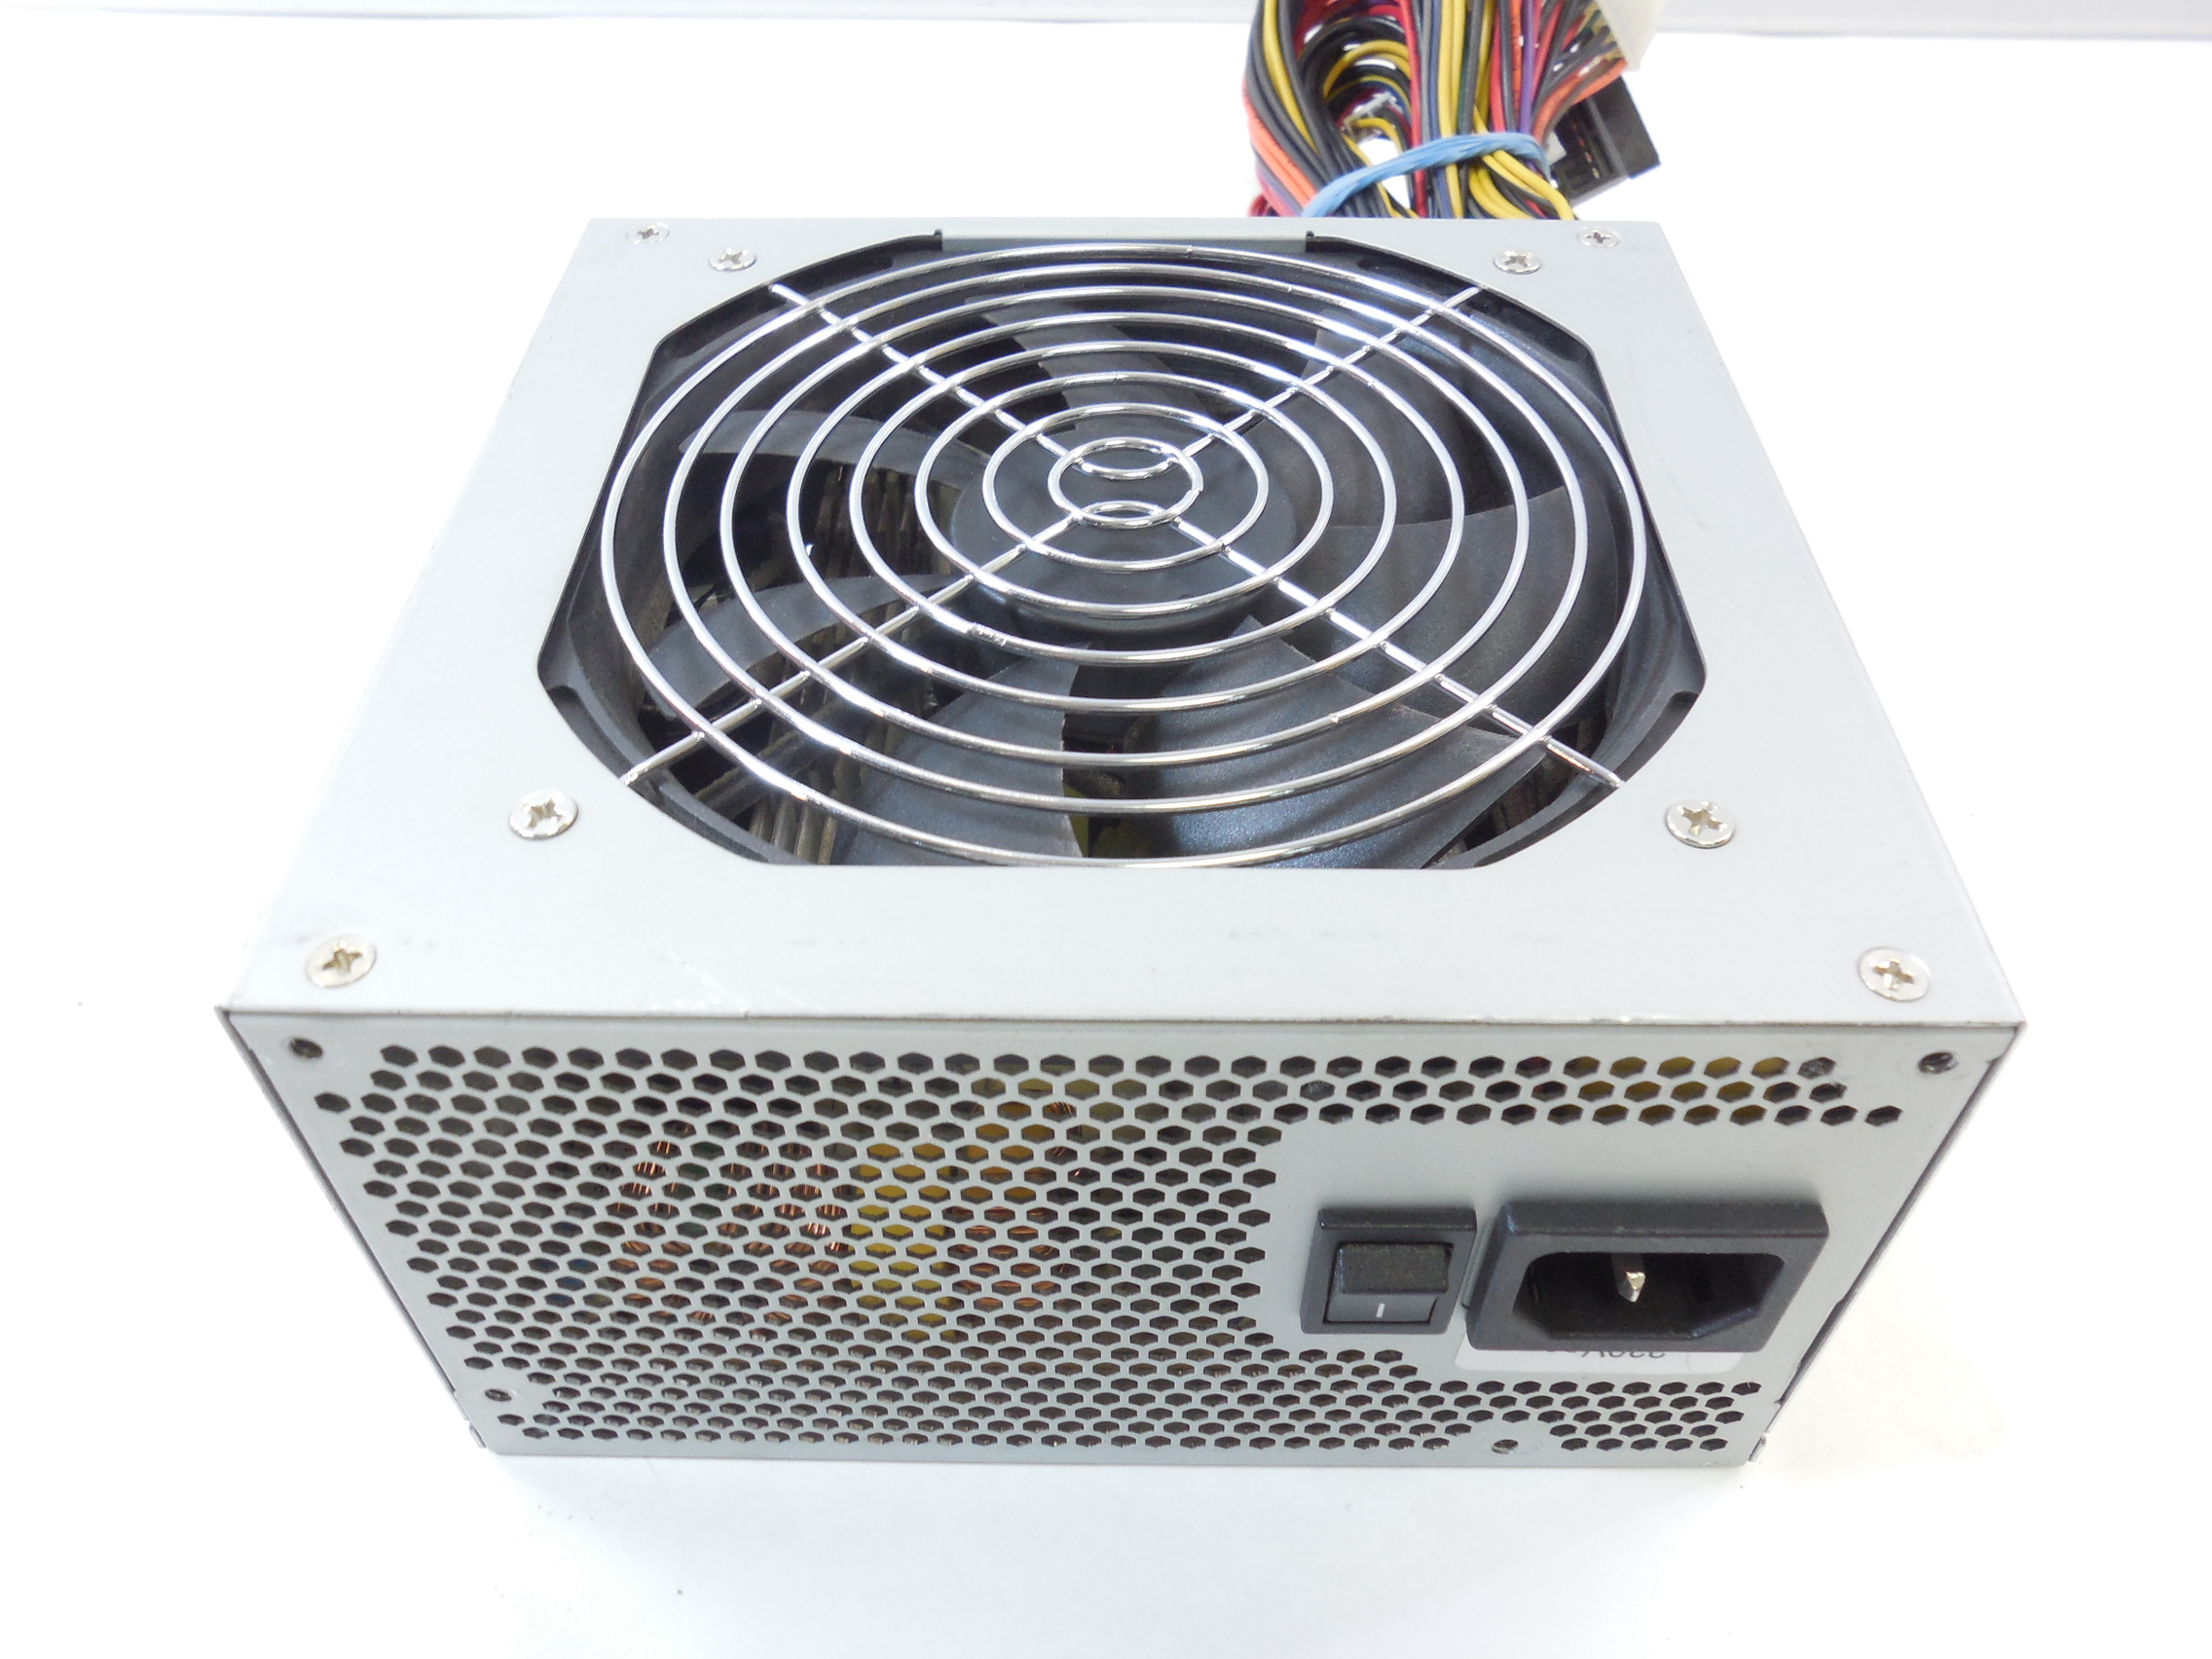 Блок питания ATX 550W PowerMan IP-S550AQ3-0 - Pic n 270080